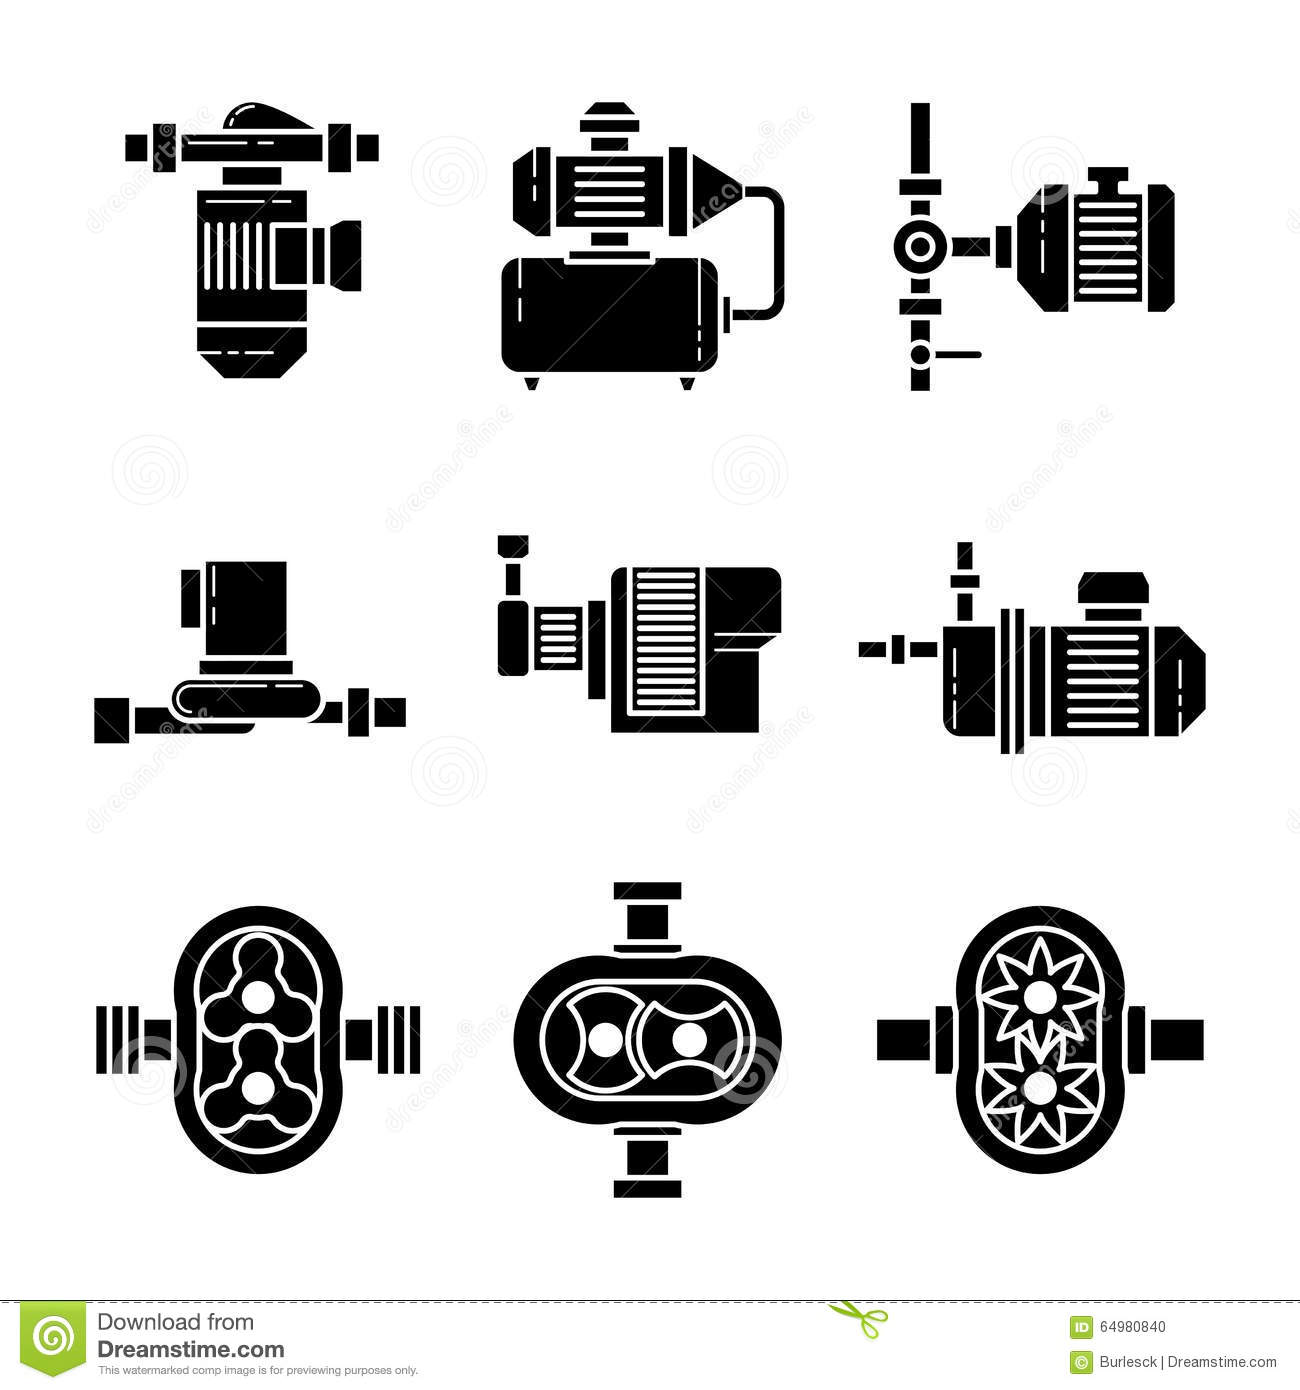 Plumbing pump icon clipart graphic free stock Plumbing pump icon clipart - ClipartFest graphic free stock